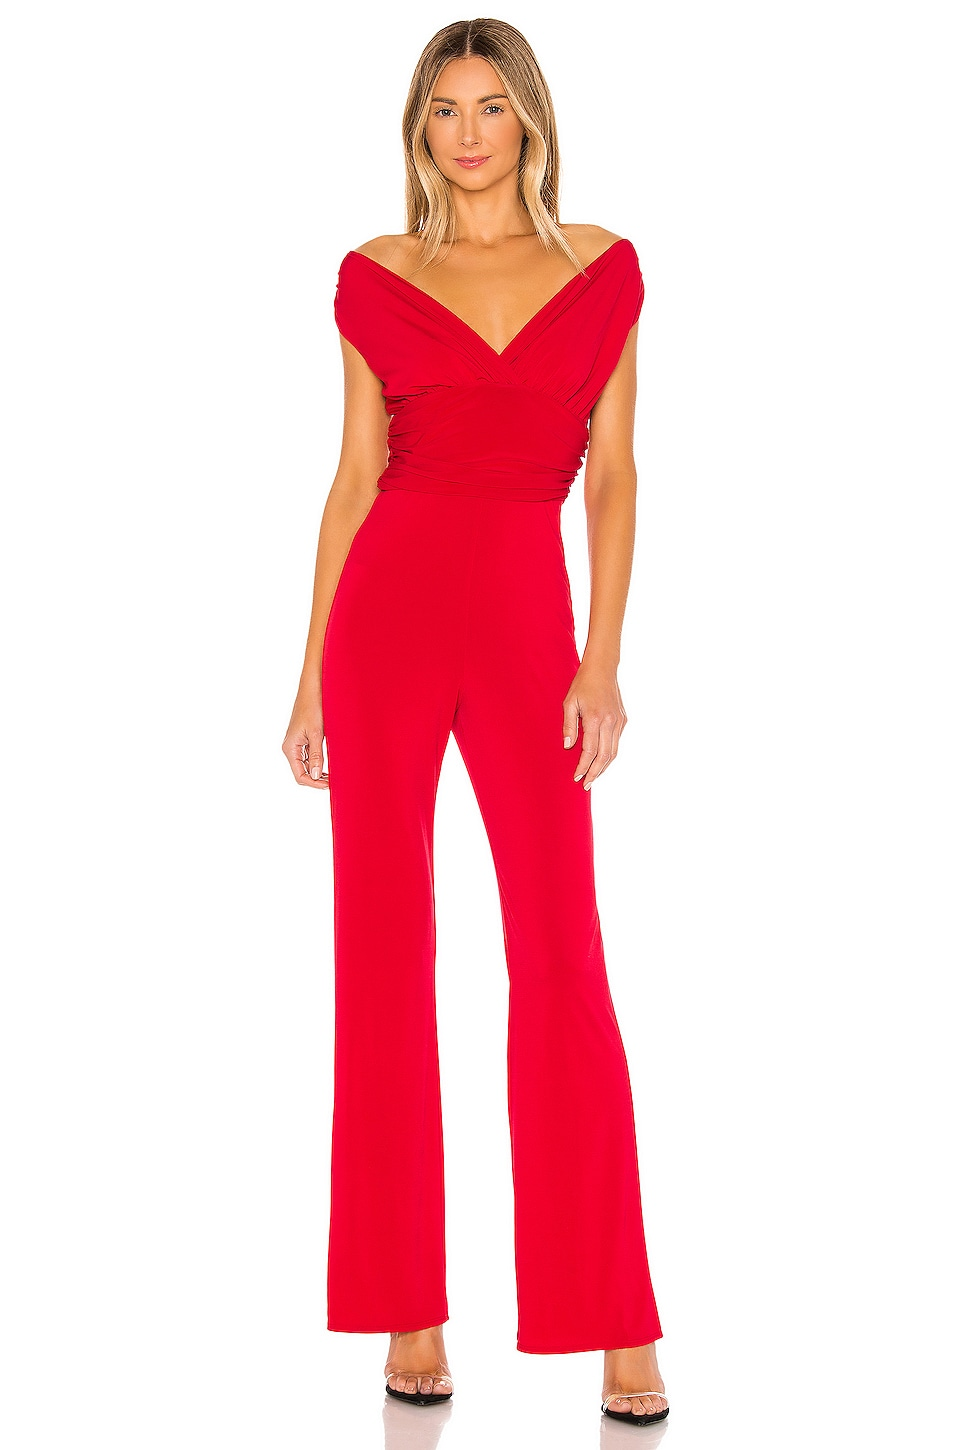 Lovers + Friends Croft Jumpsuit in Carmine Red